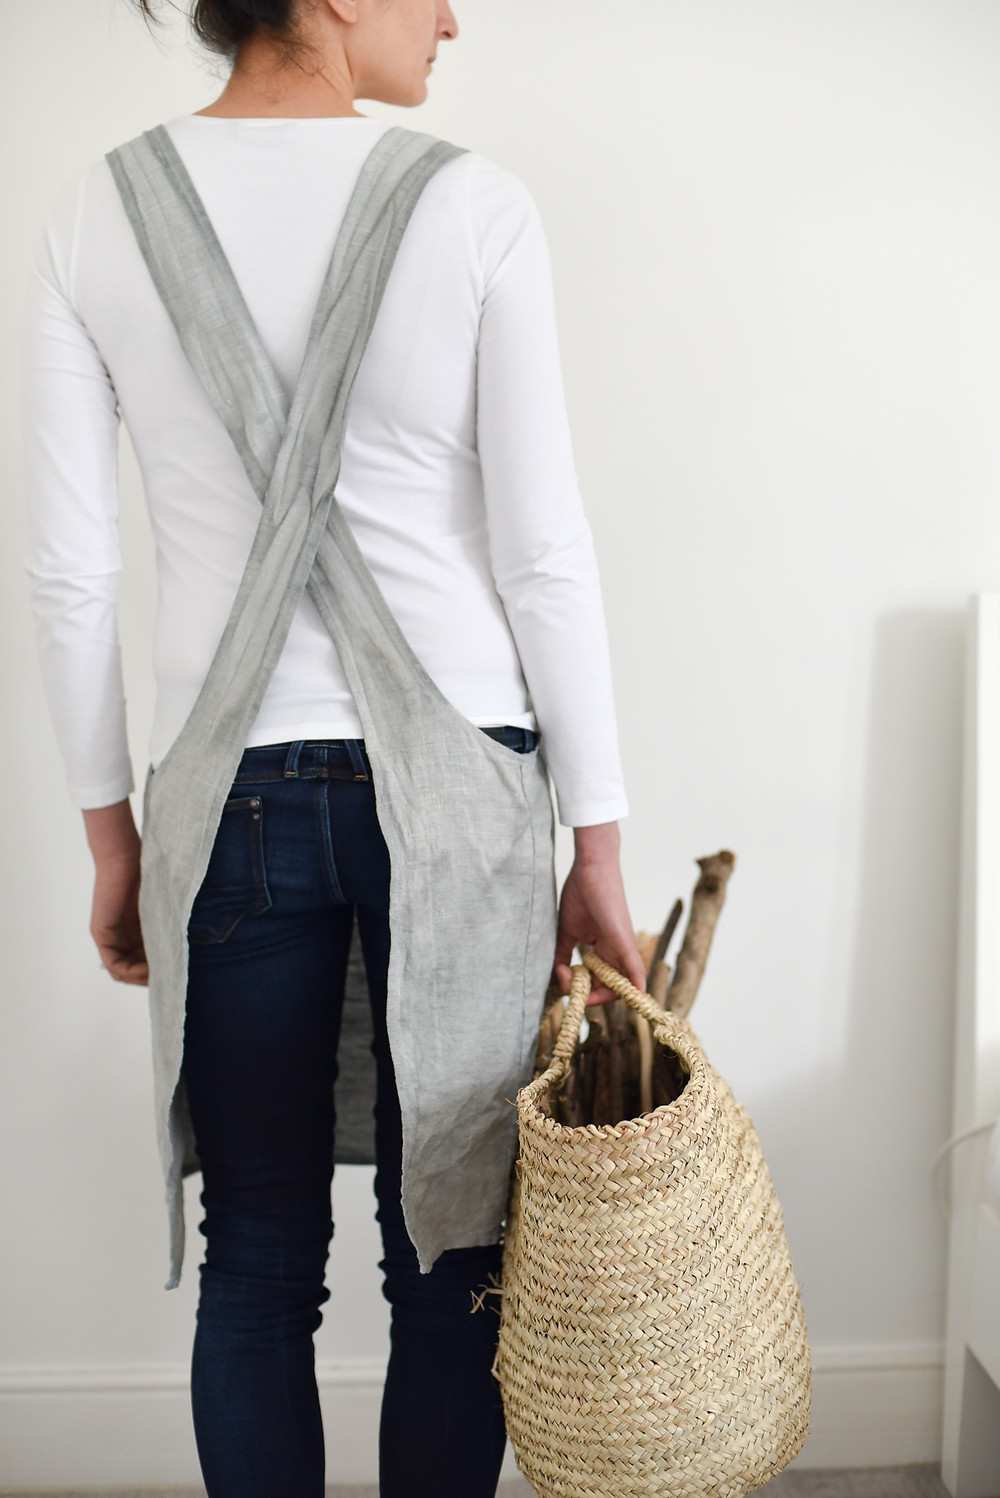 Naturally dyed linen apron in light blue